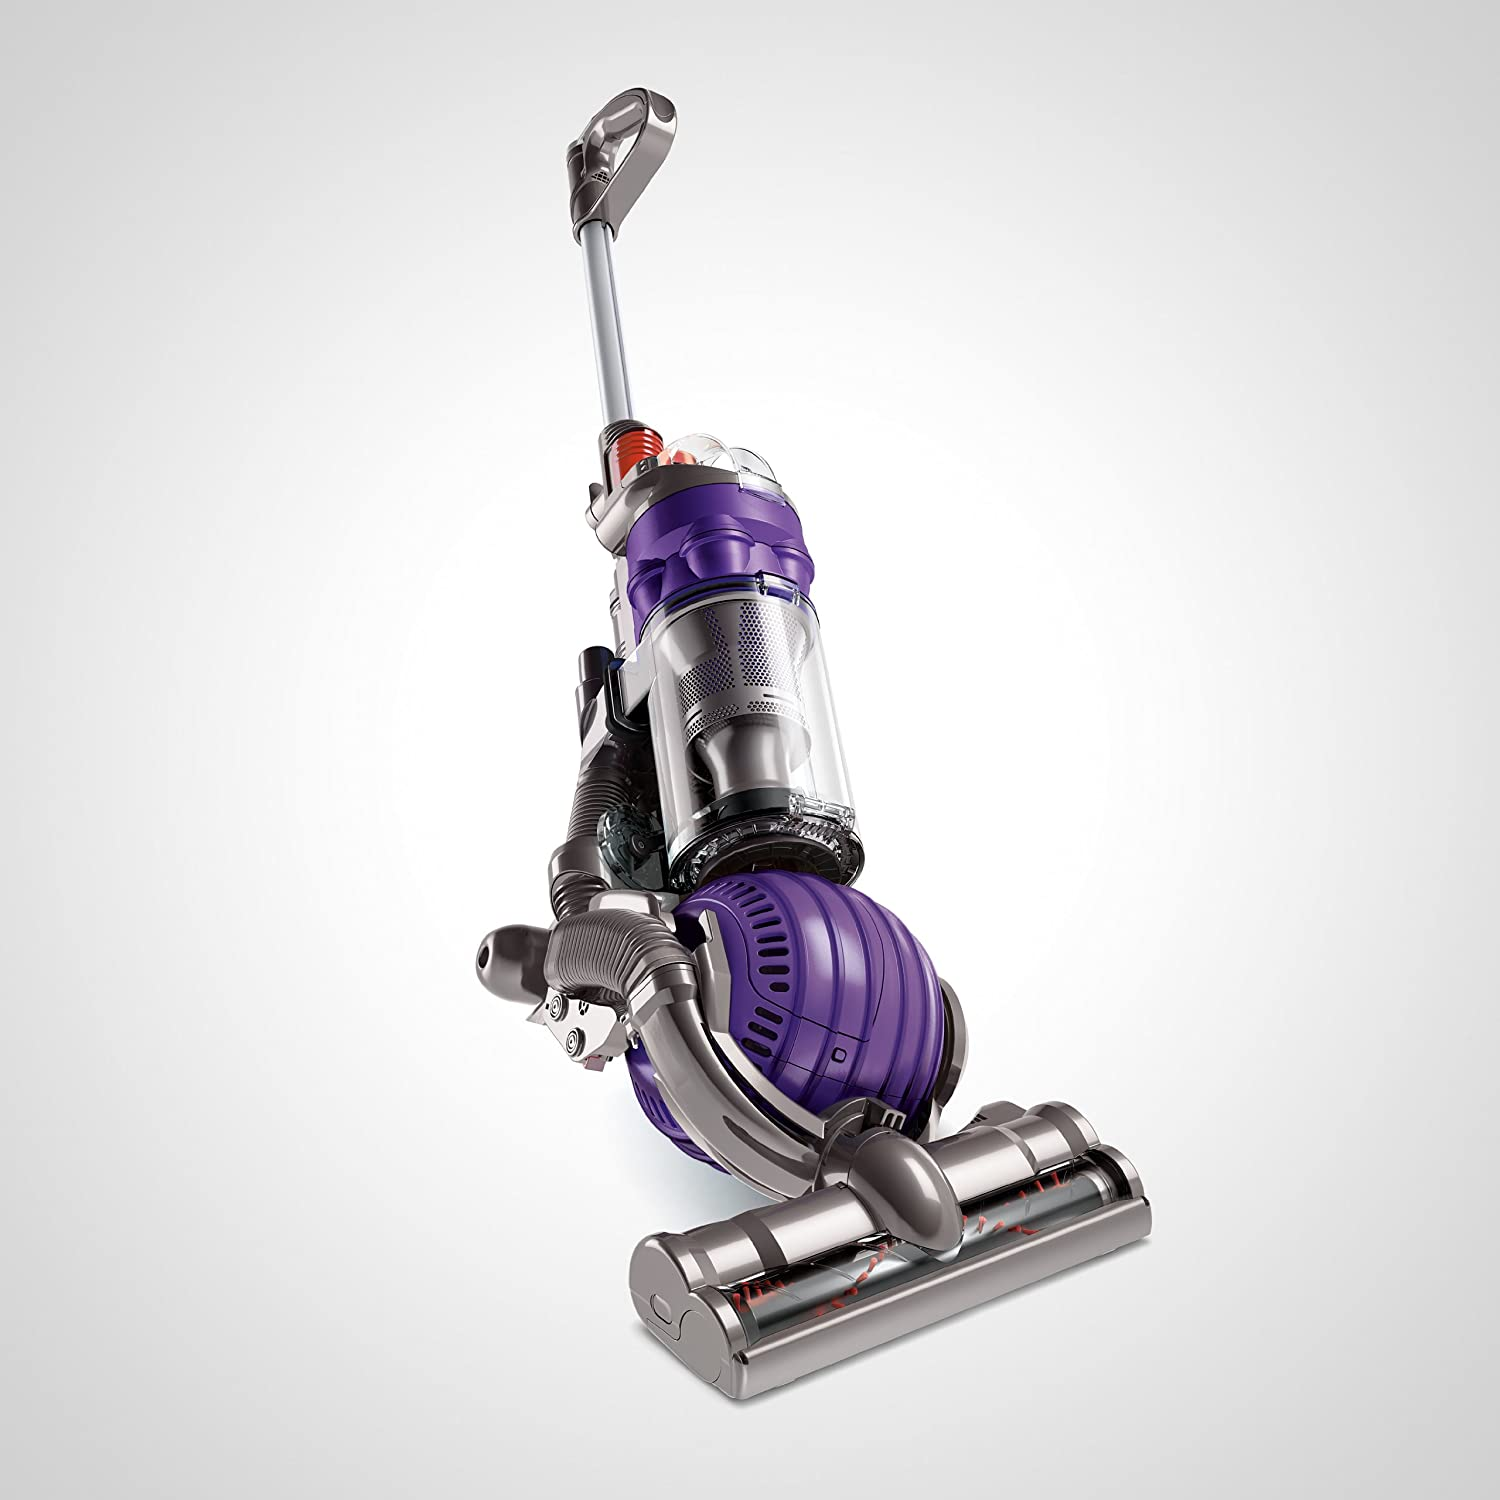 dyson dc24 small ball animal pet bagless upright vacuum cleaner lightweight hepa ebay. Black Bedroom Furniture Sets. Home Design Ideas